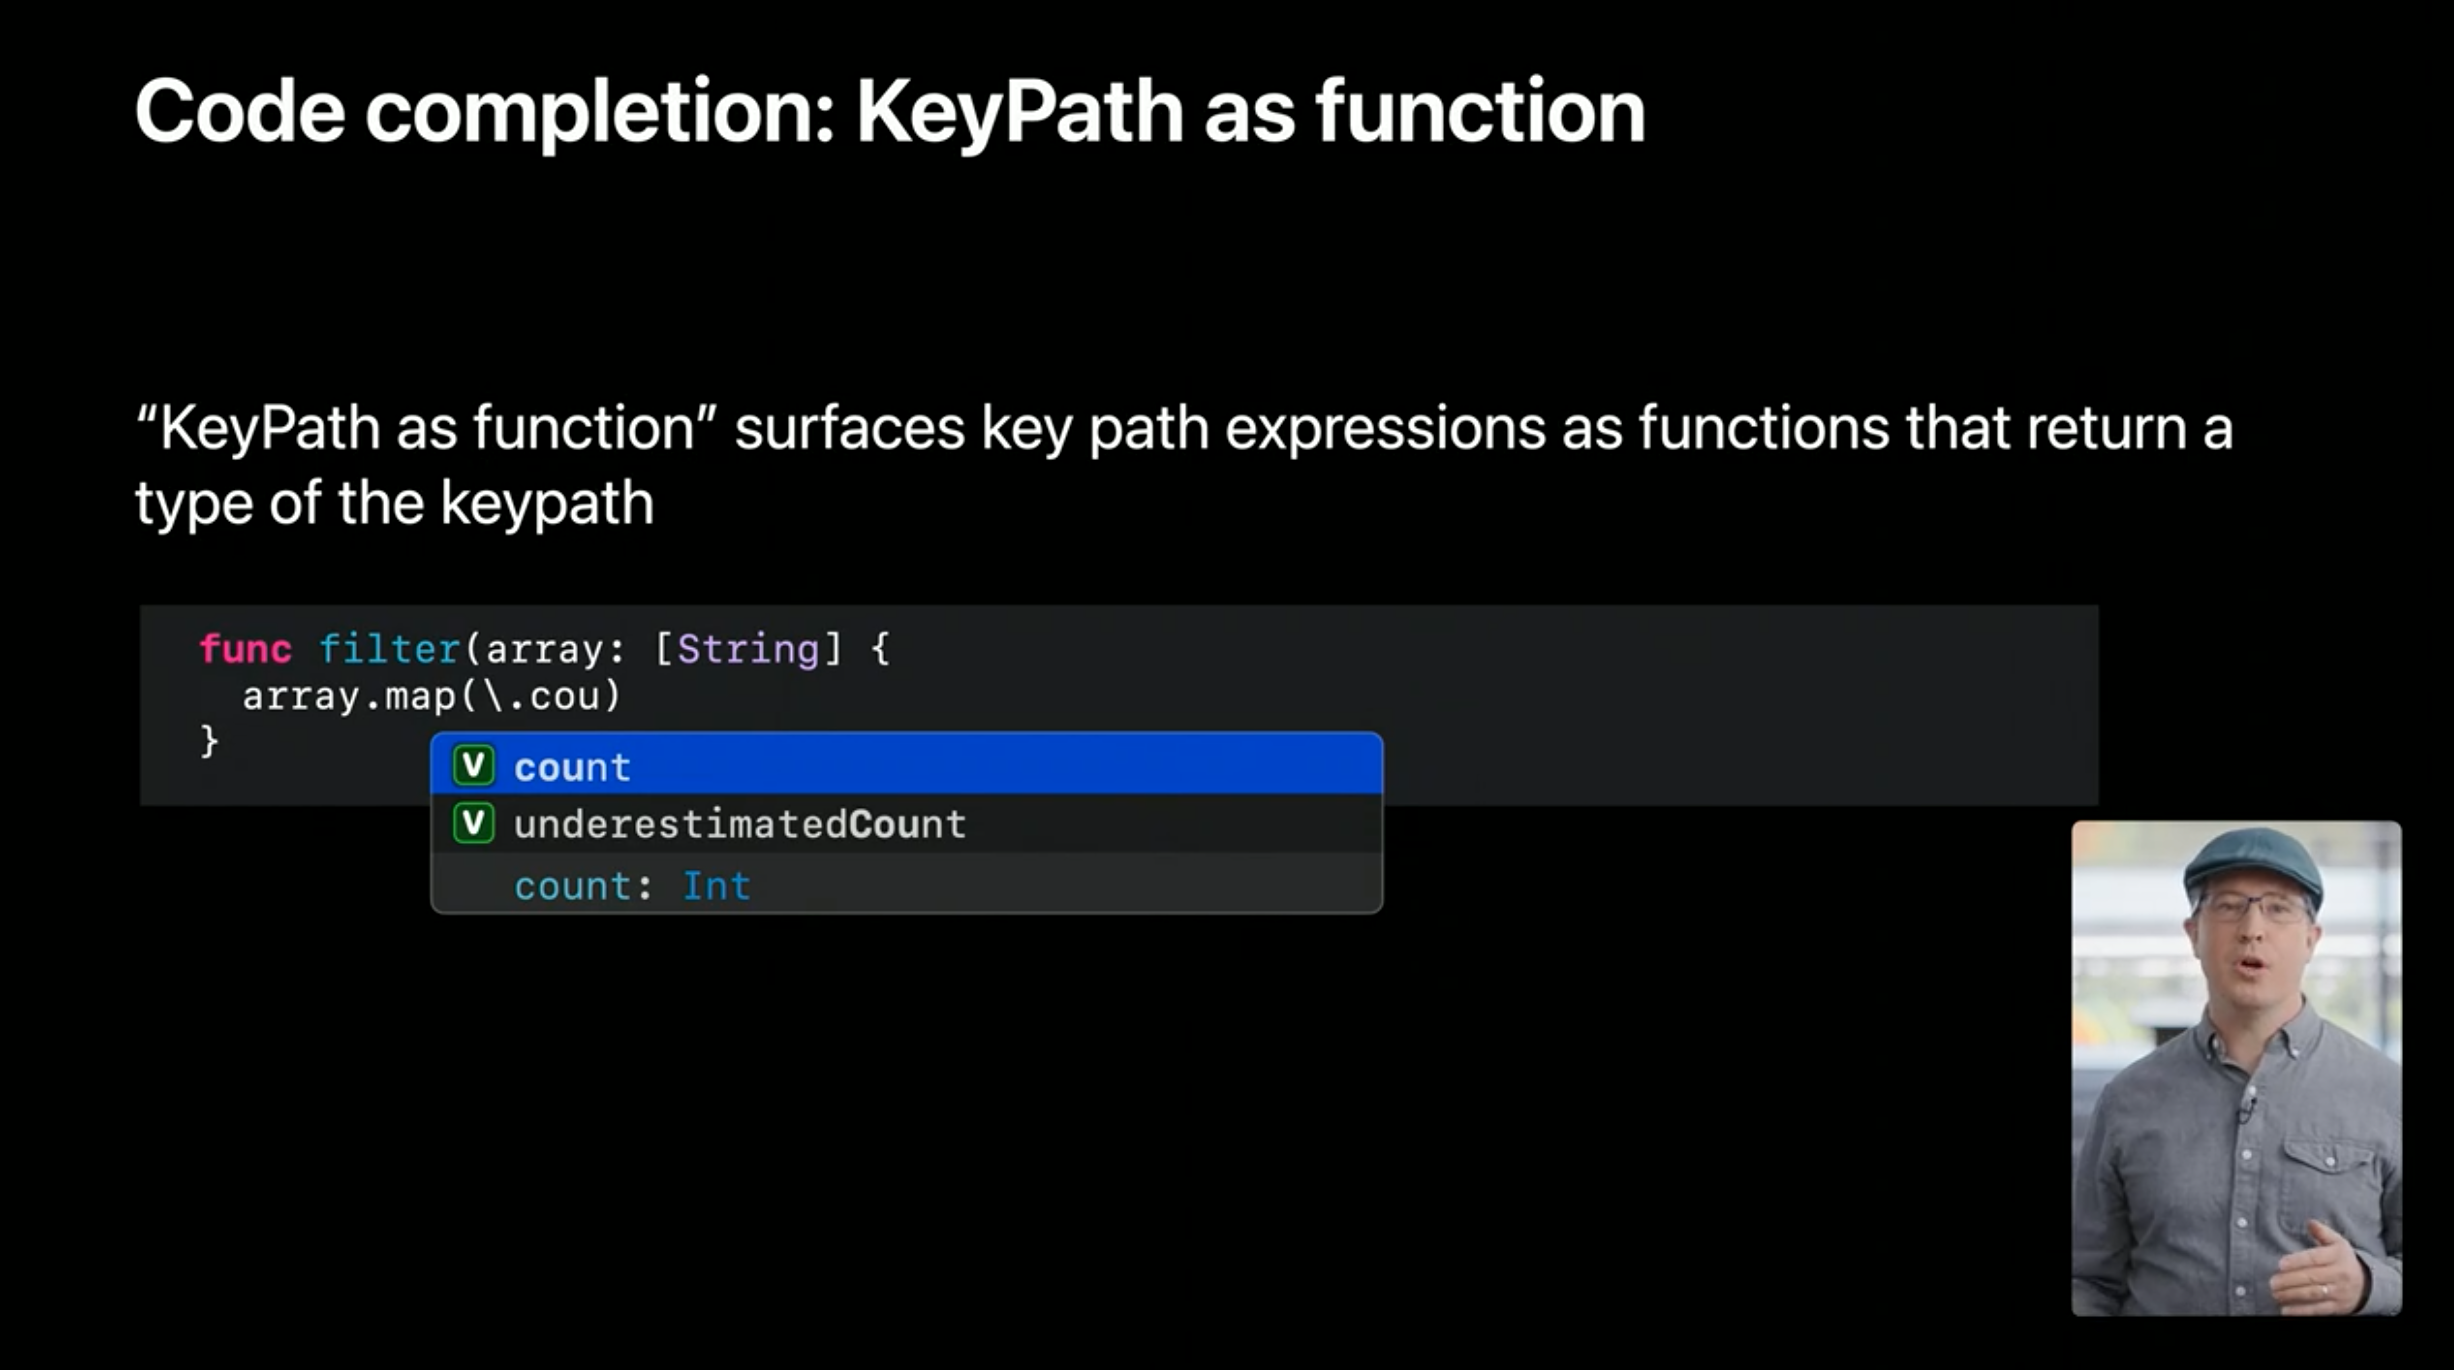 keypath-as-function